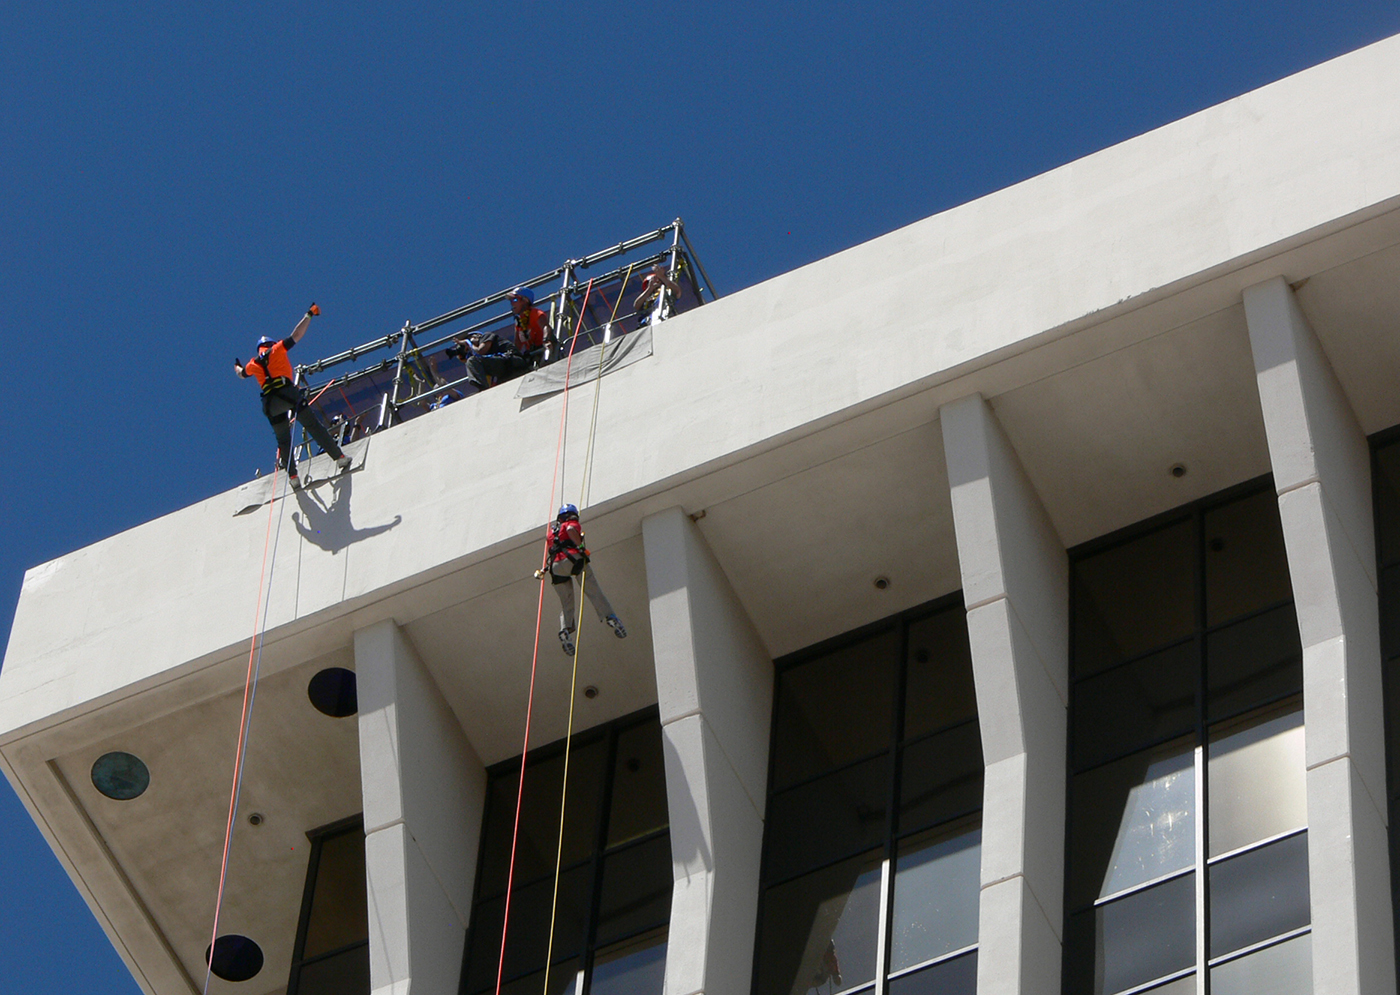 Worker starting to repel from the top of the building